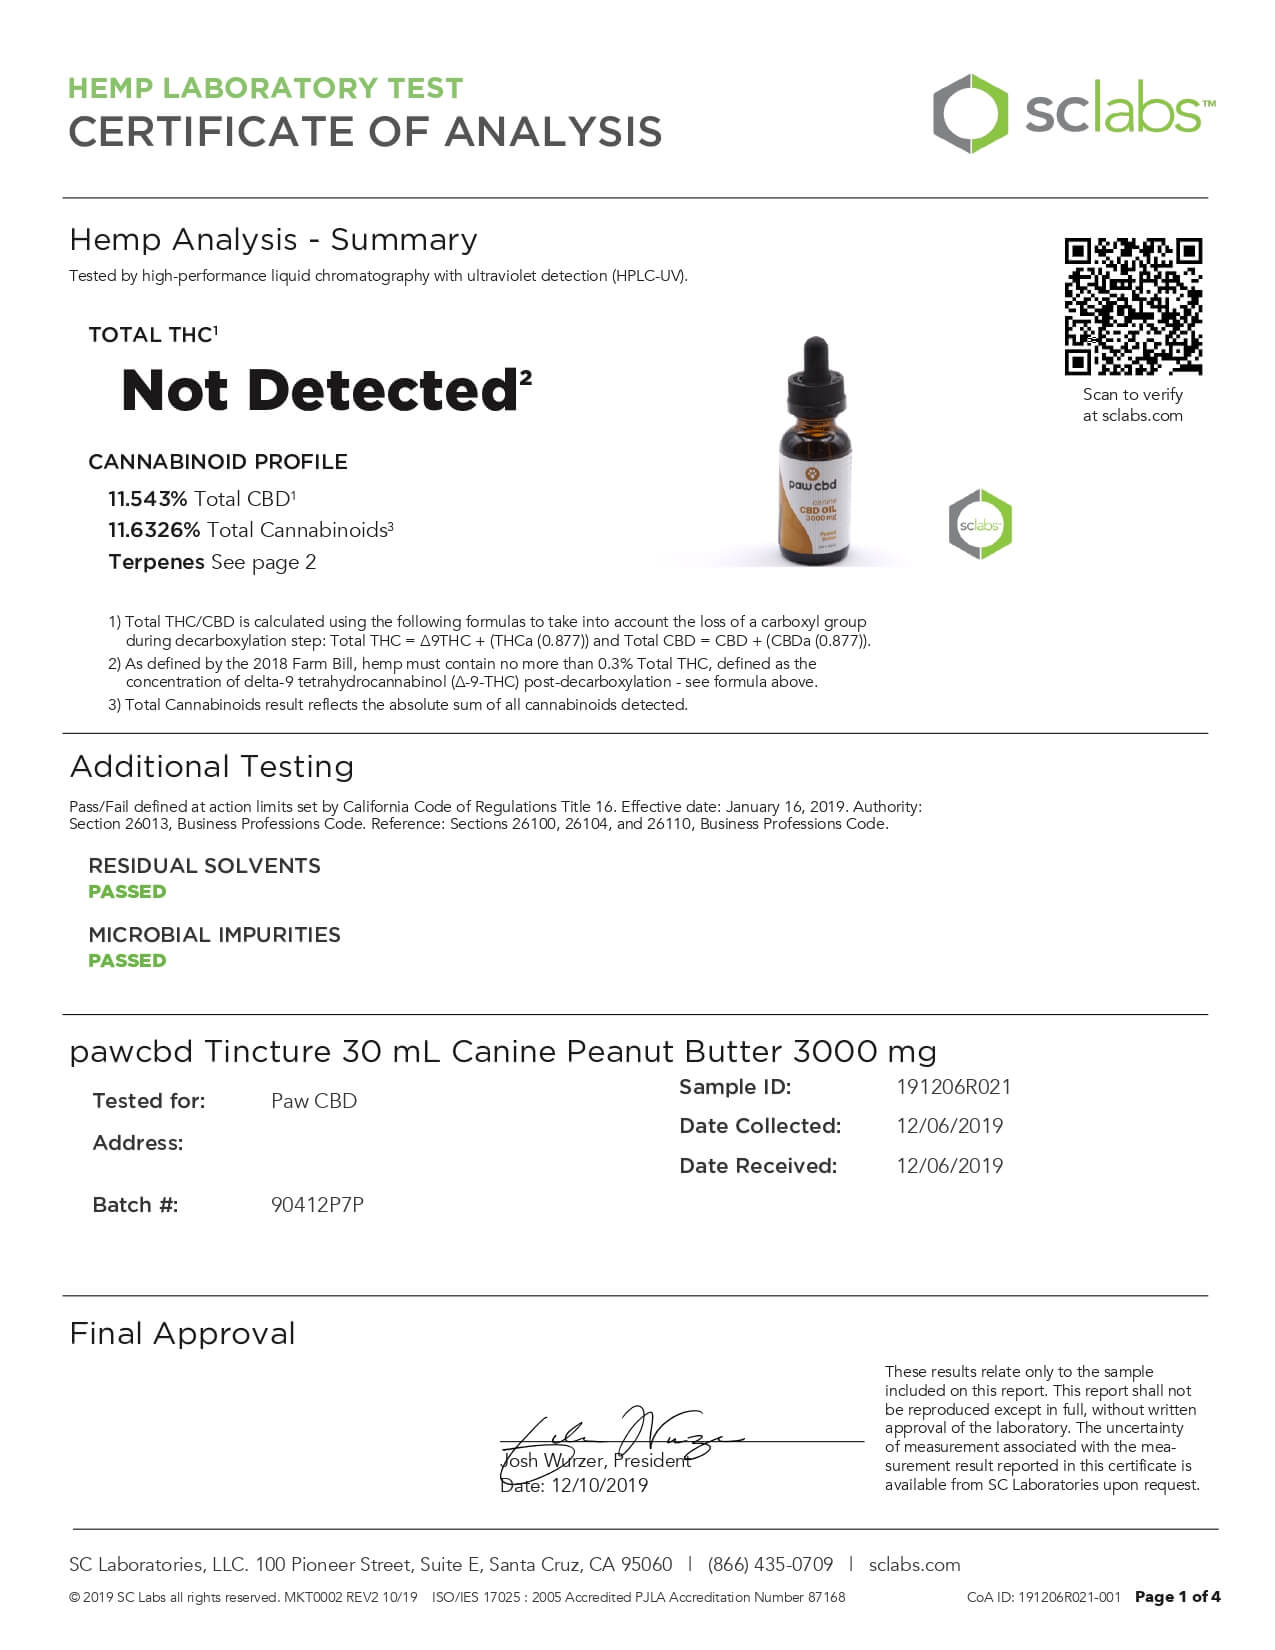 cbdMD CBD Pet Tincture Peanut Butter Flavored for Canines 3000mg Lab Report